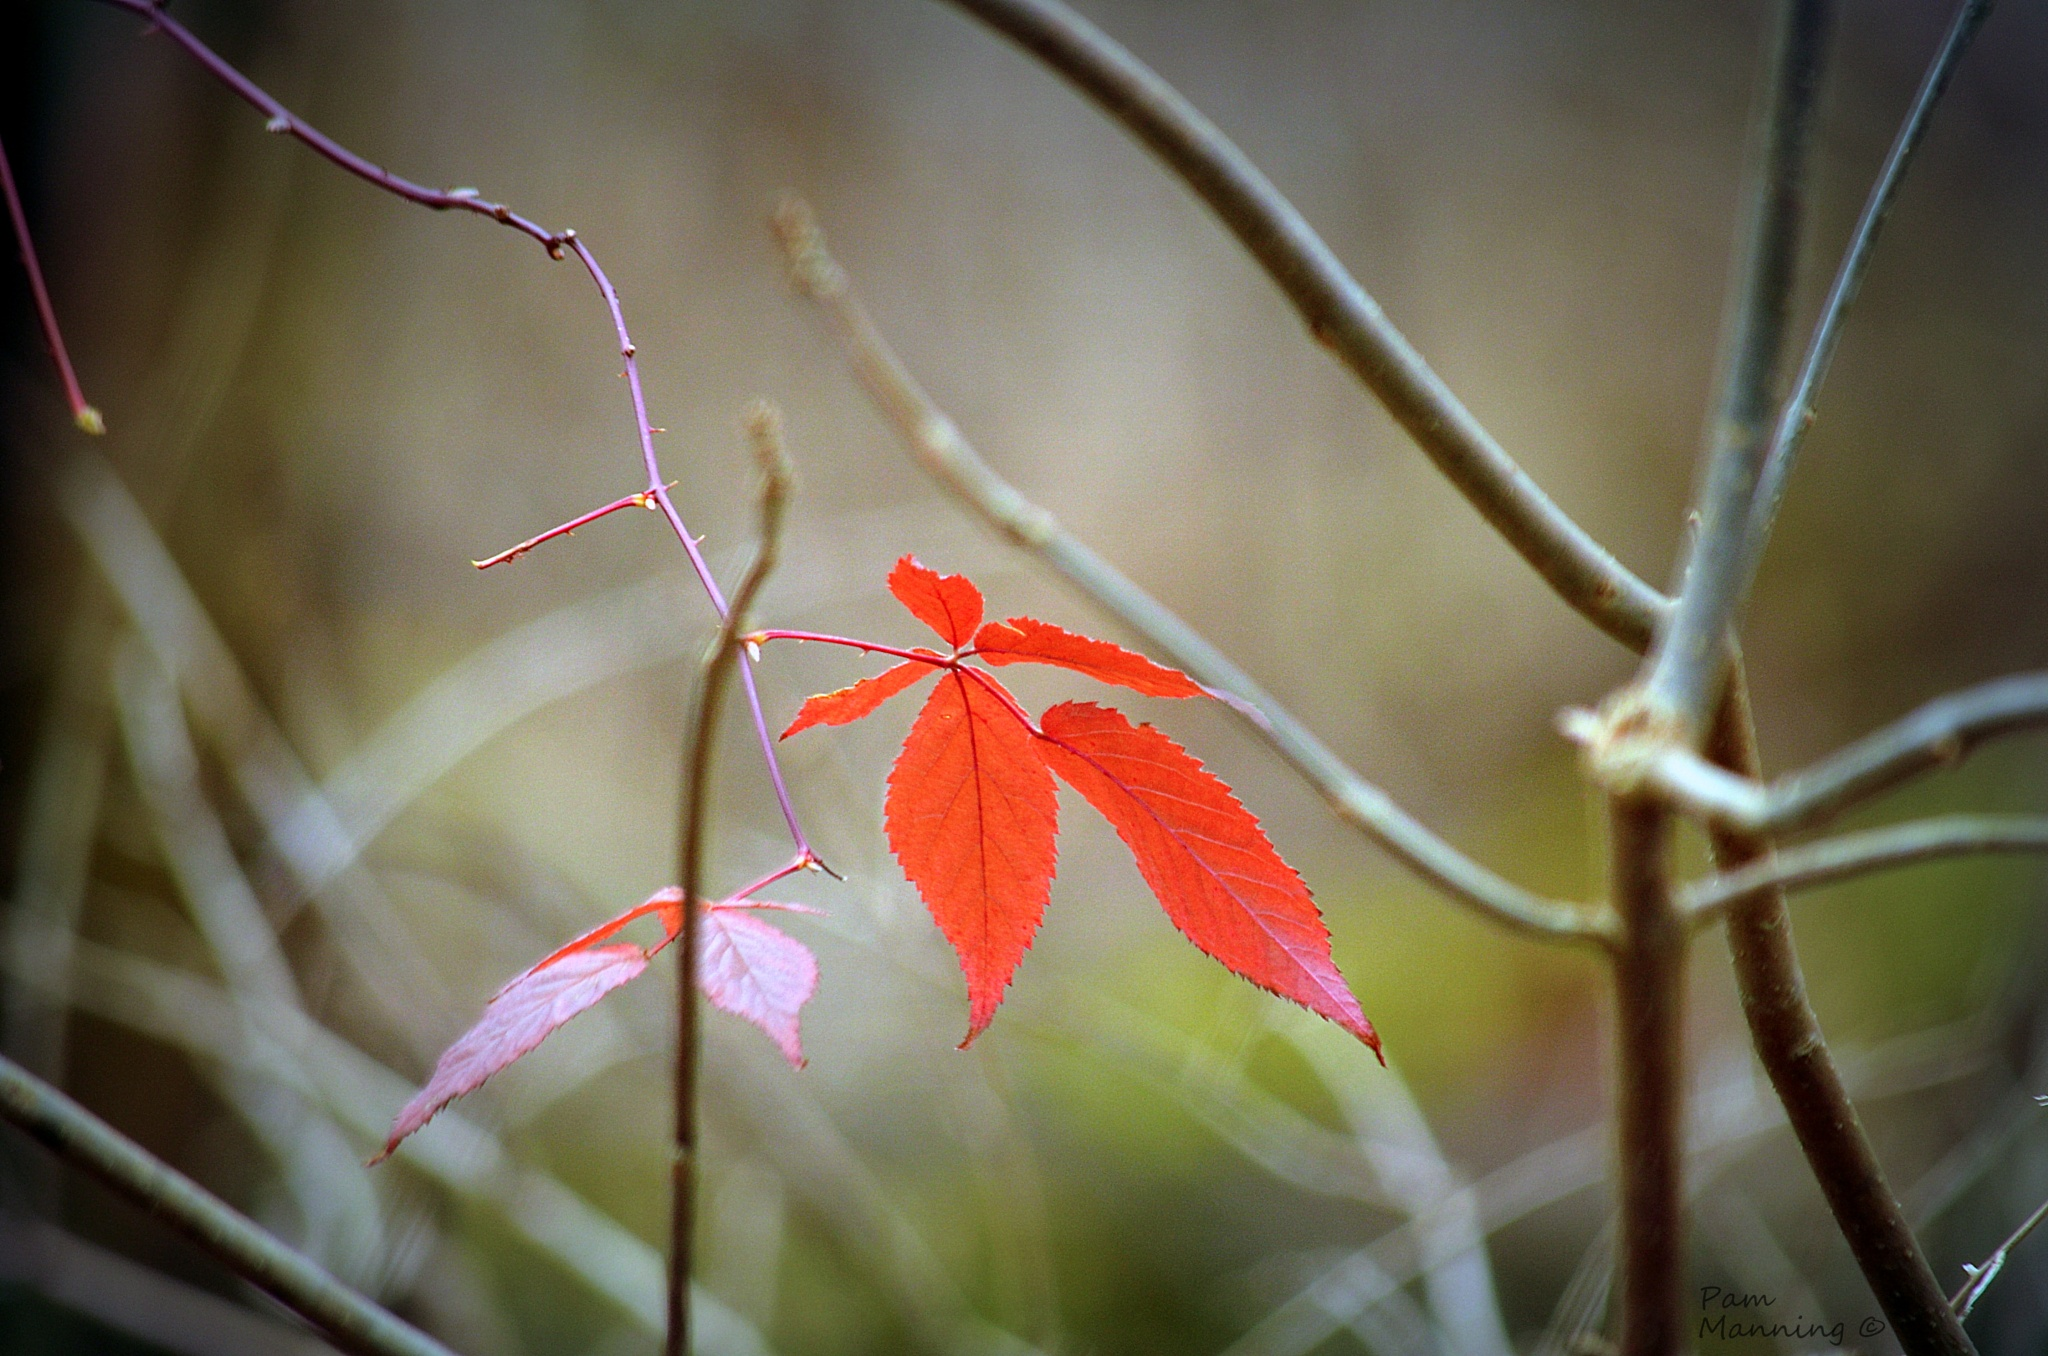 Hanging on. . . by pam.satterfieldmanning